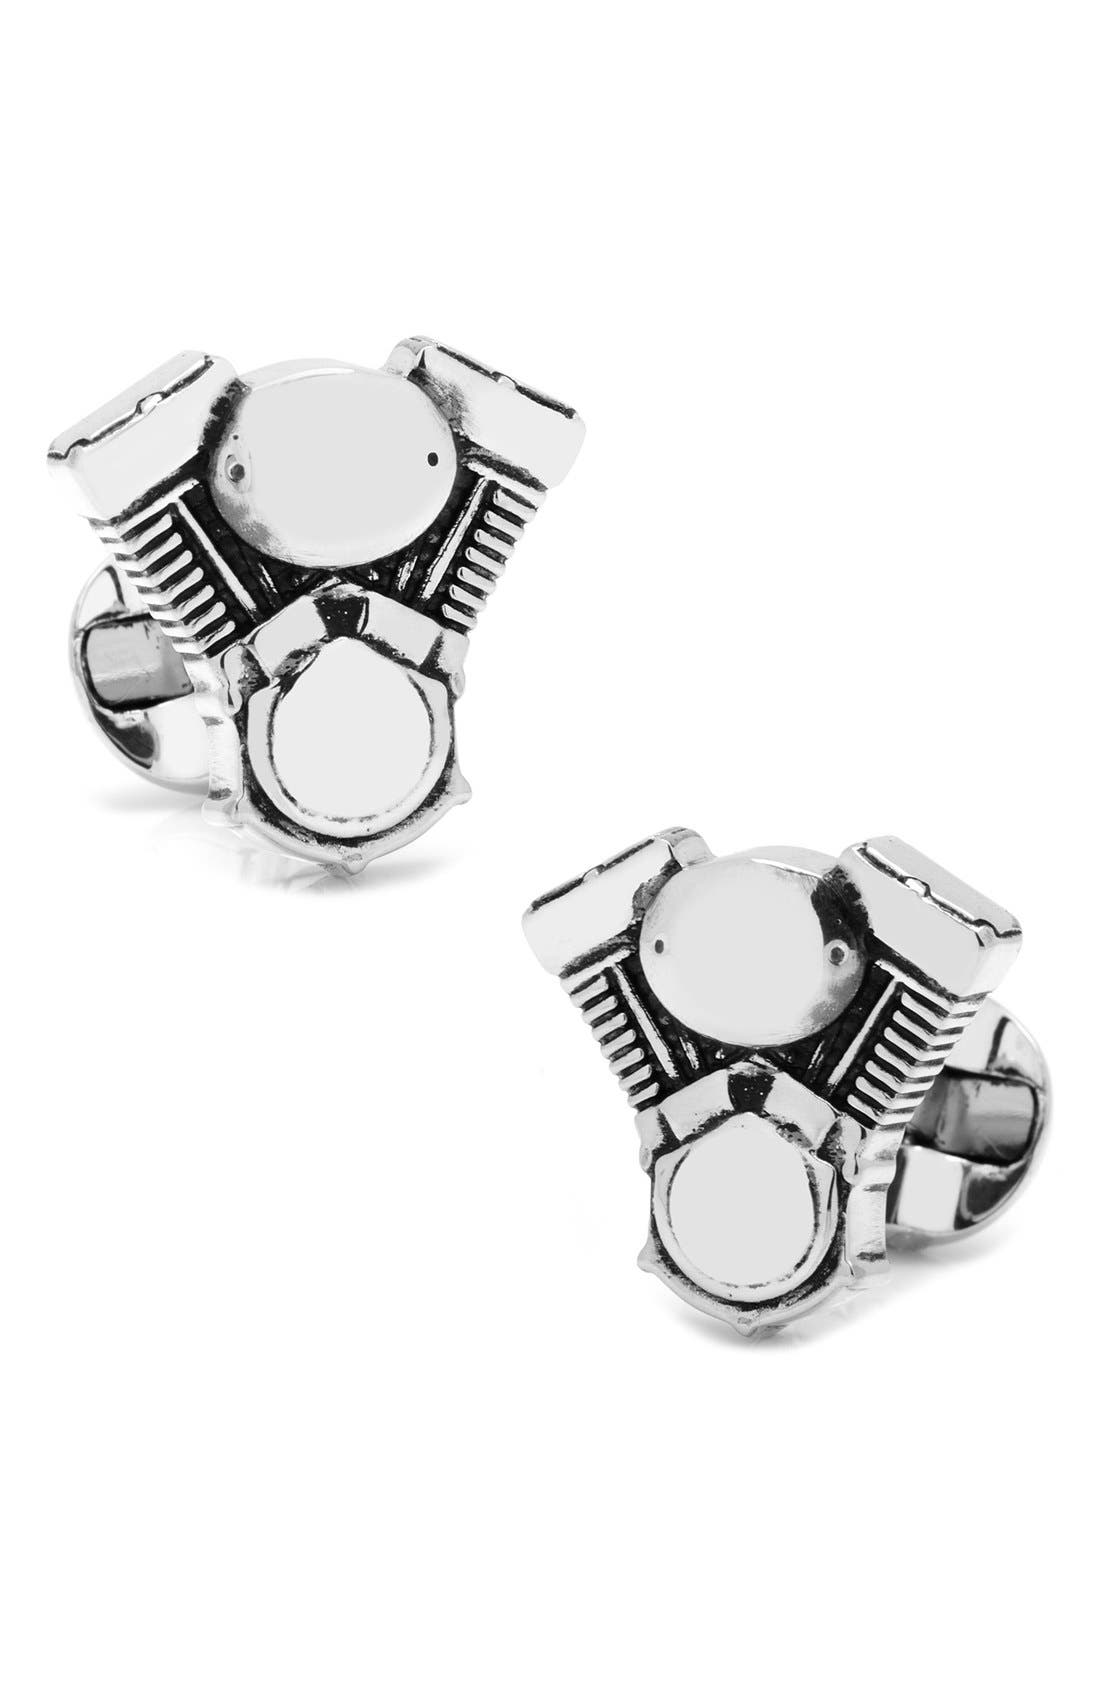 OX AND BULL TRADING CO. V-Twin Motor Cuff Links